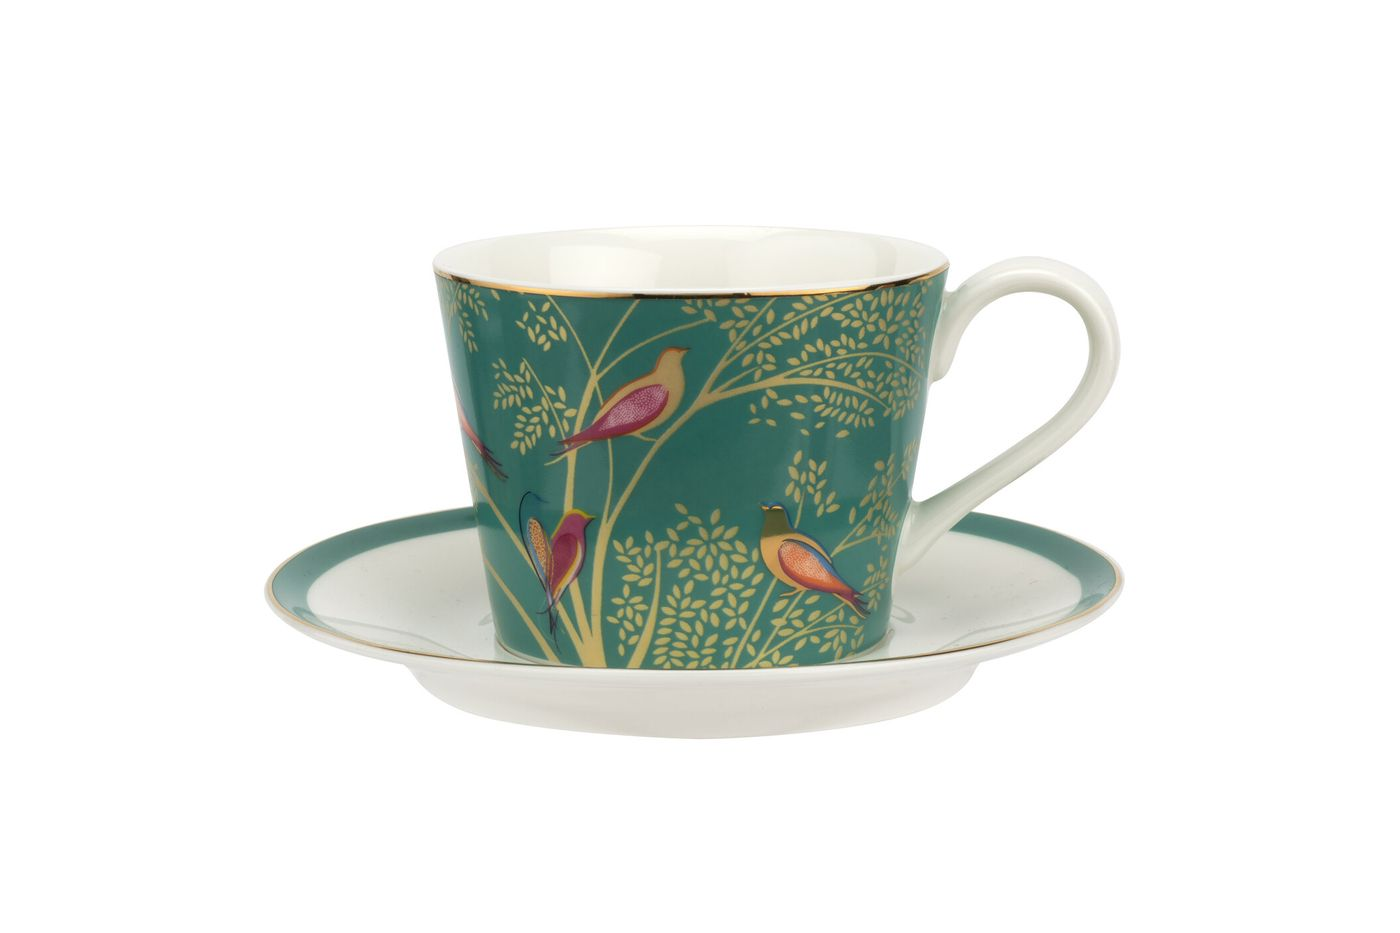 Sara Miller London for Portmeirion Chelsea Collection Tea For Two thumb 3